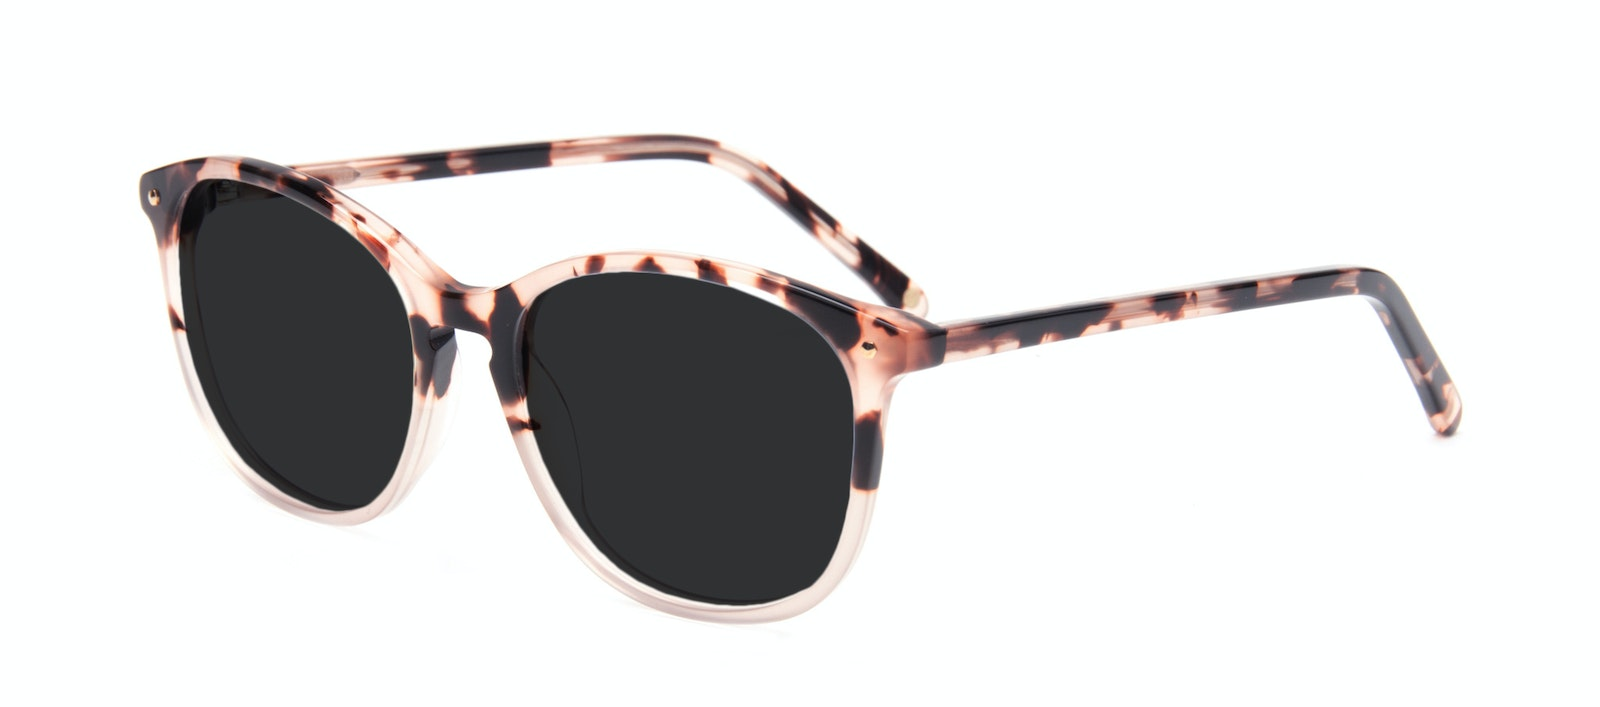 Affordable Fashion Glasses Rectangle Square Round Sunglasses Women Nadine Two Tone Pink Tilt